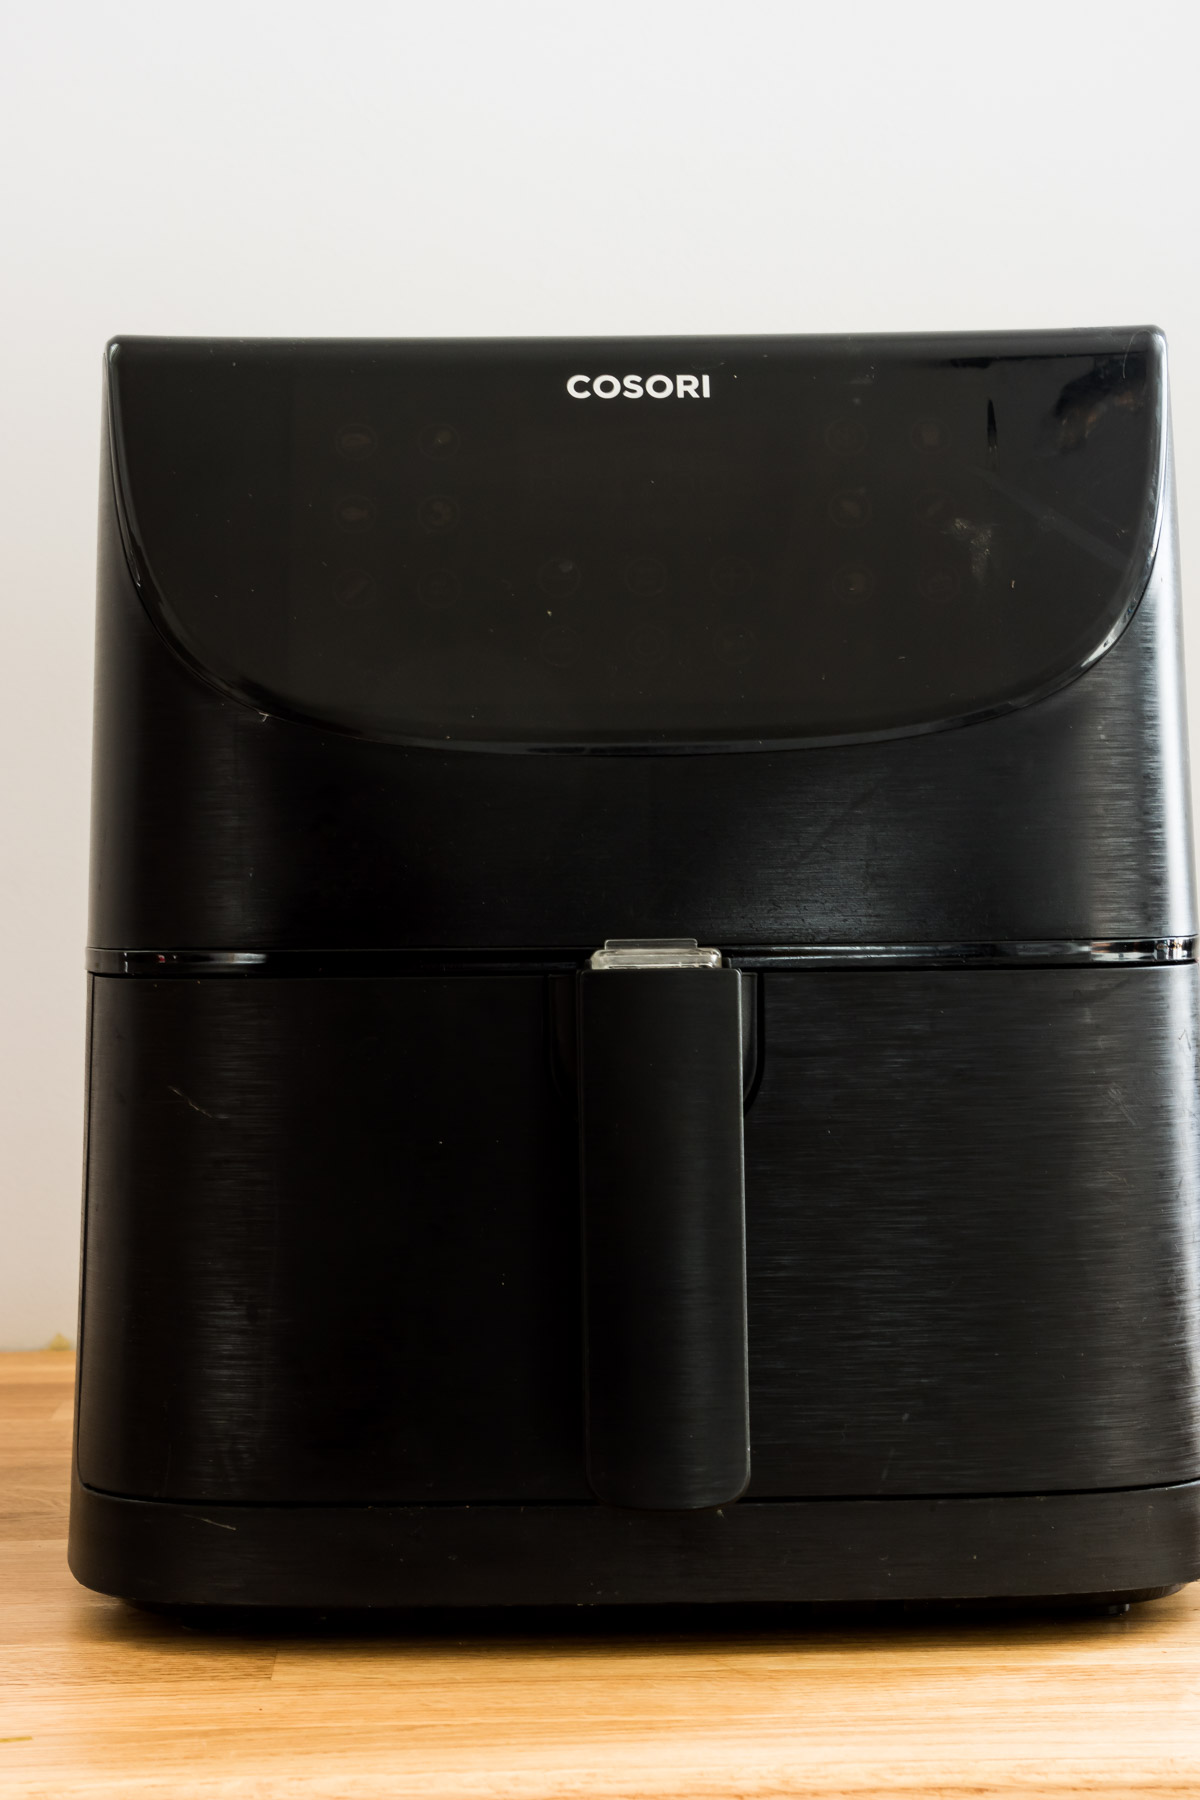 front view of a cosori air fryer